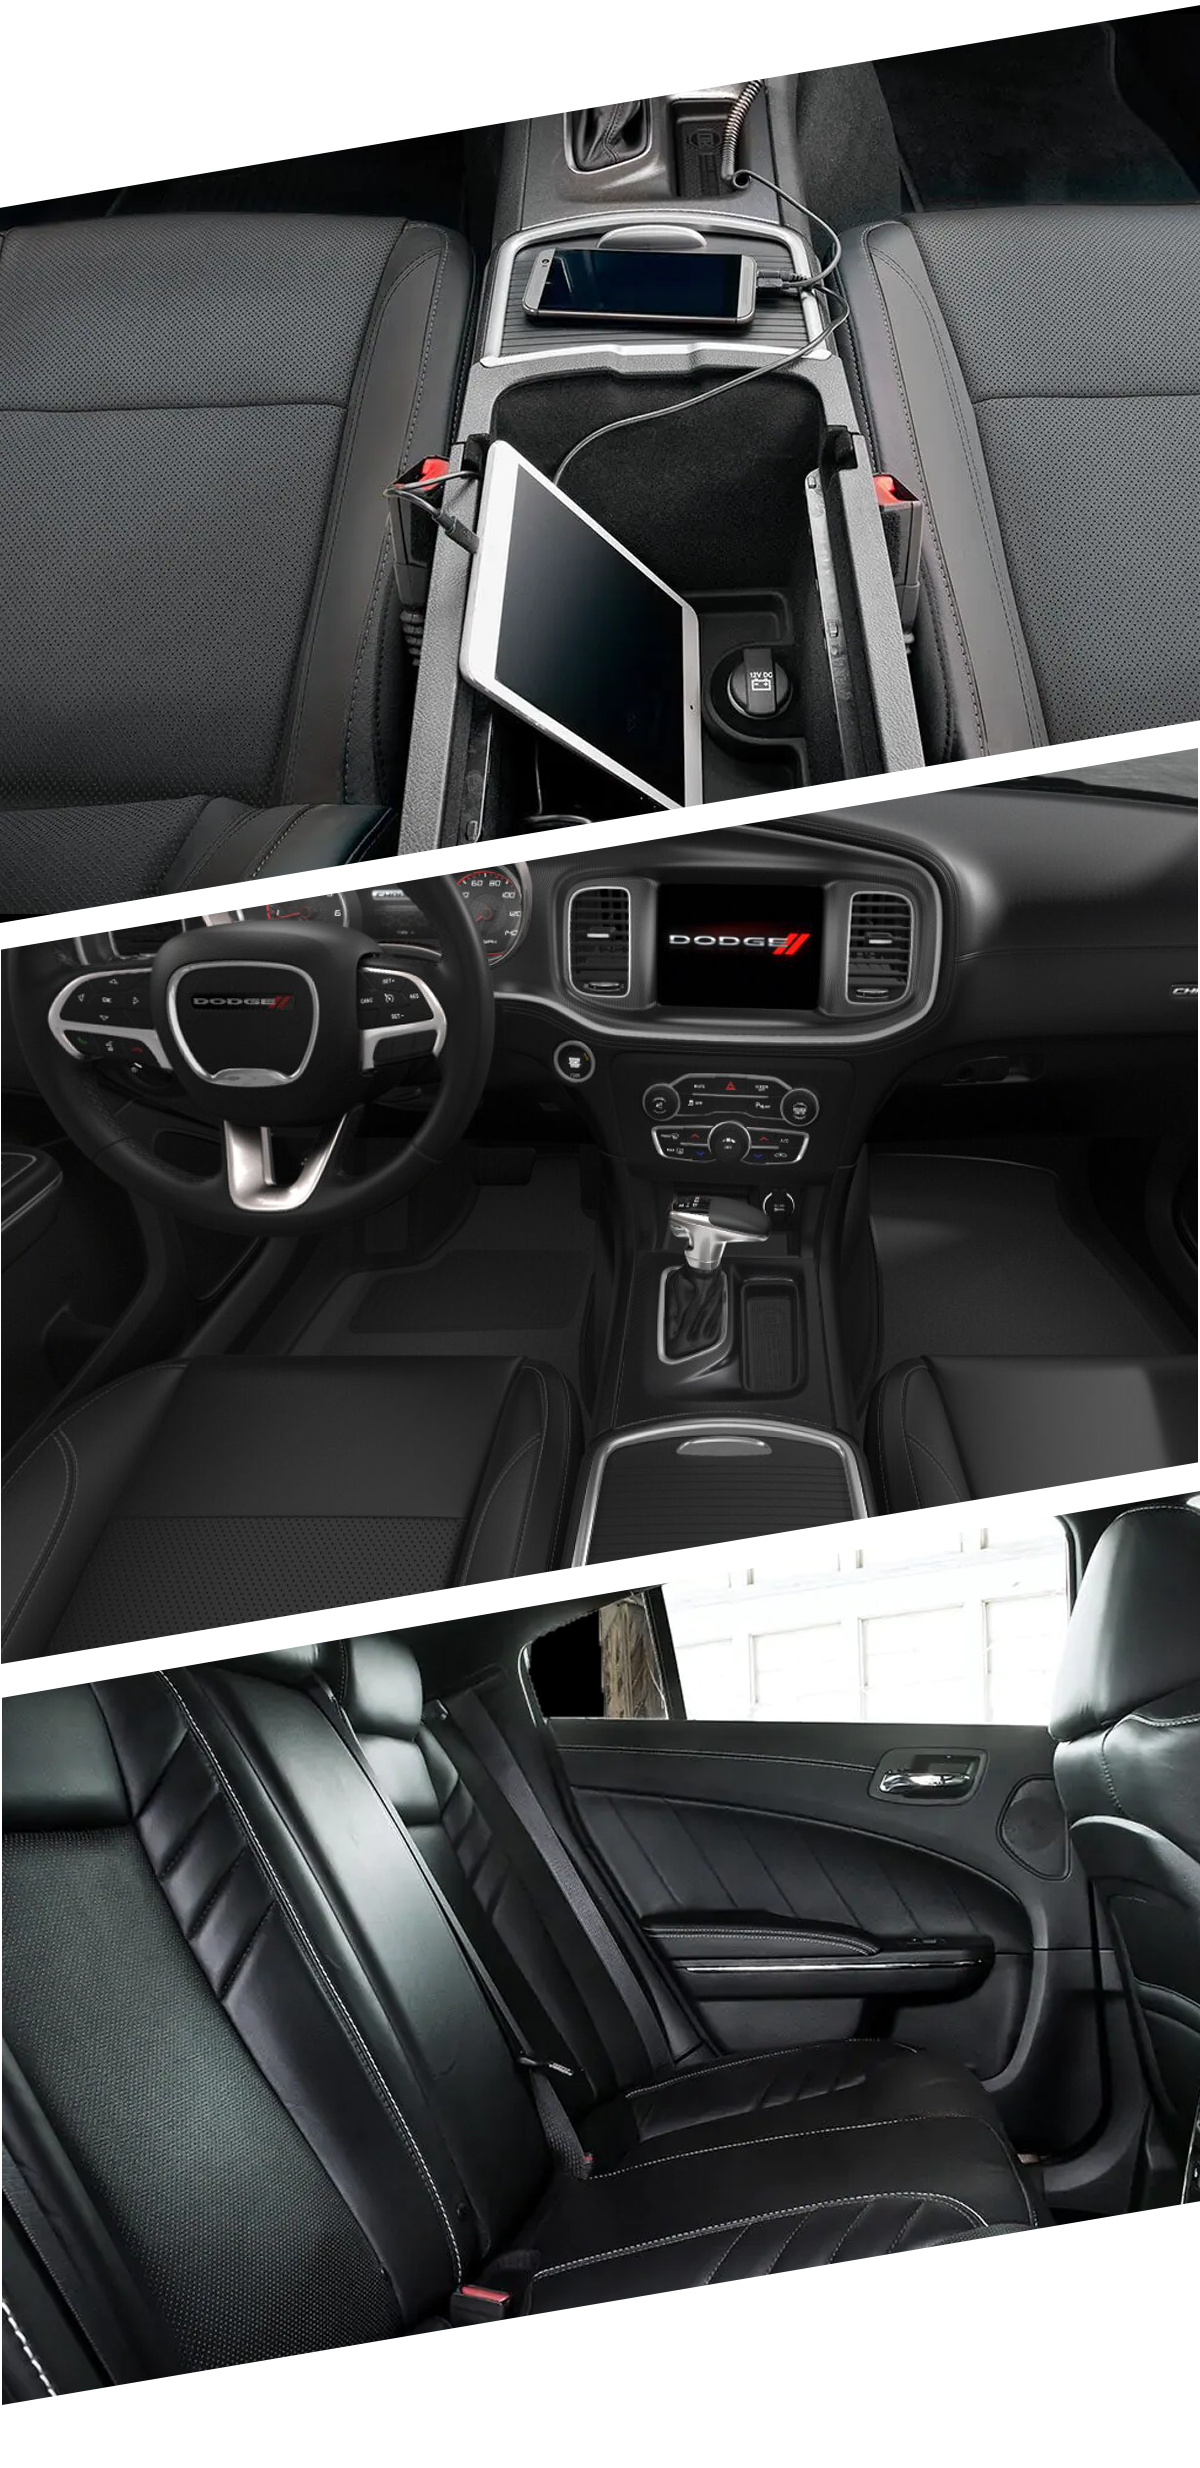 2021 Dodge Charger Interior Lucedale, MS